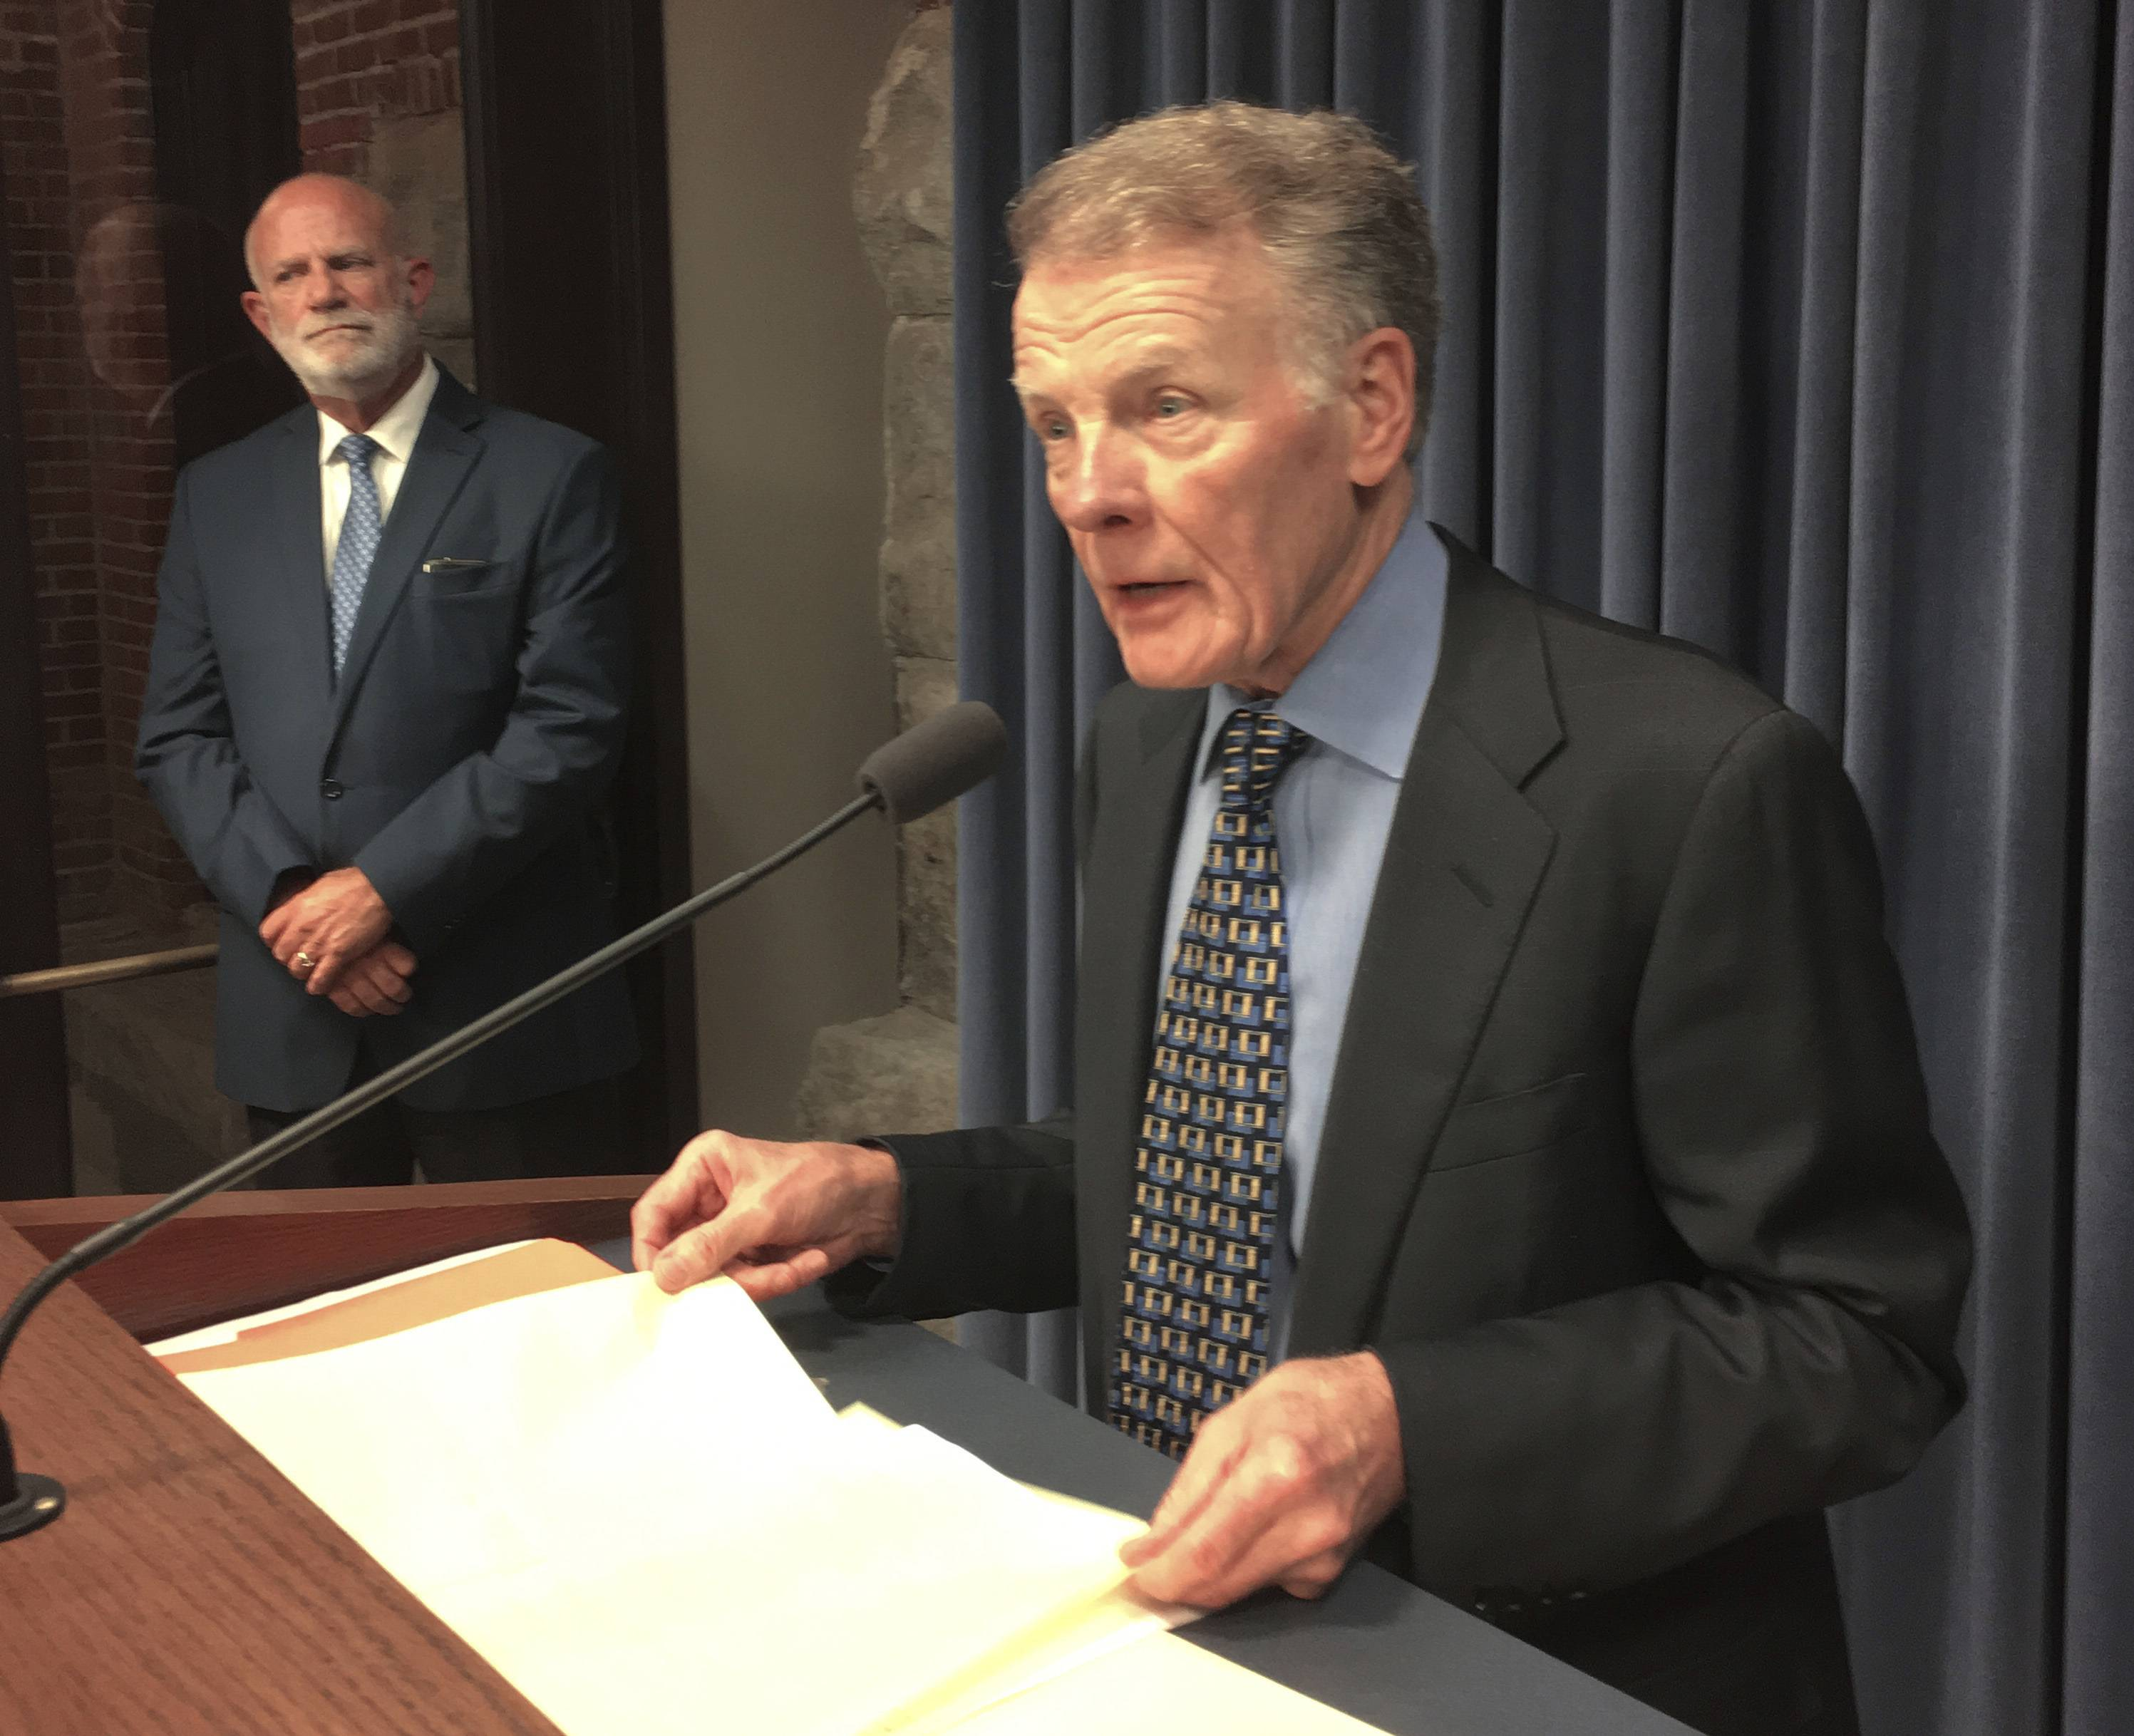 Illinois House Speaker Michael Madigan said he canceled a vote Wednesday to override Gov. Bruce Rauner's veto on school funding.